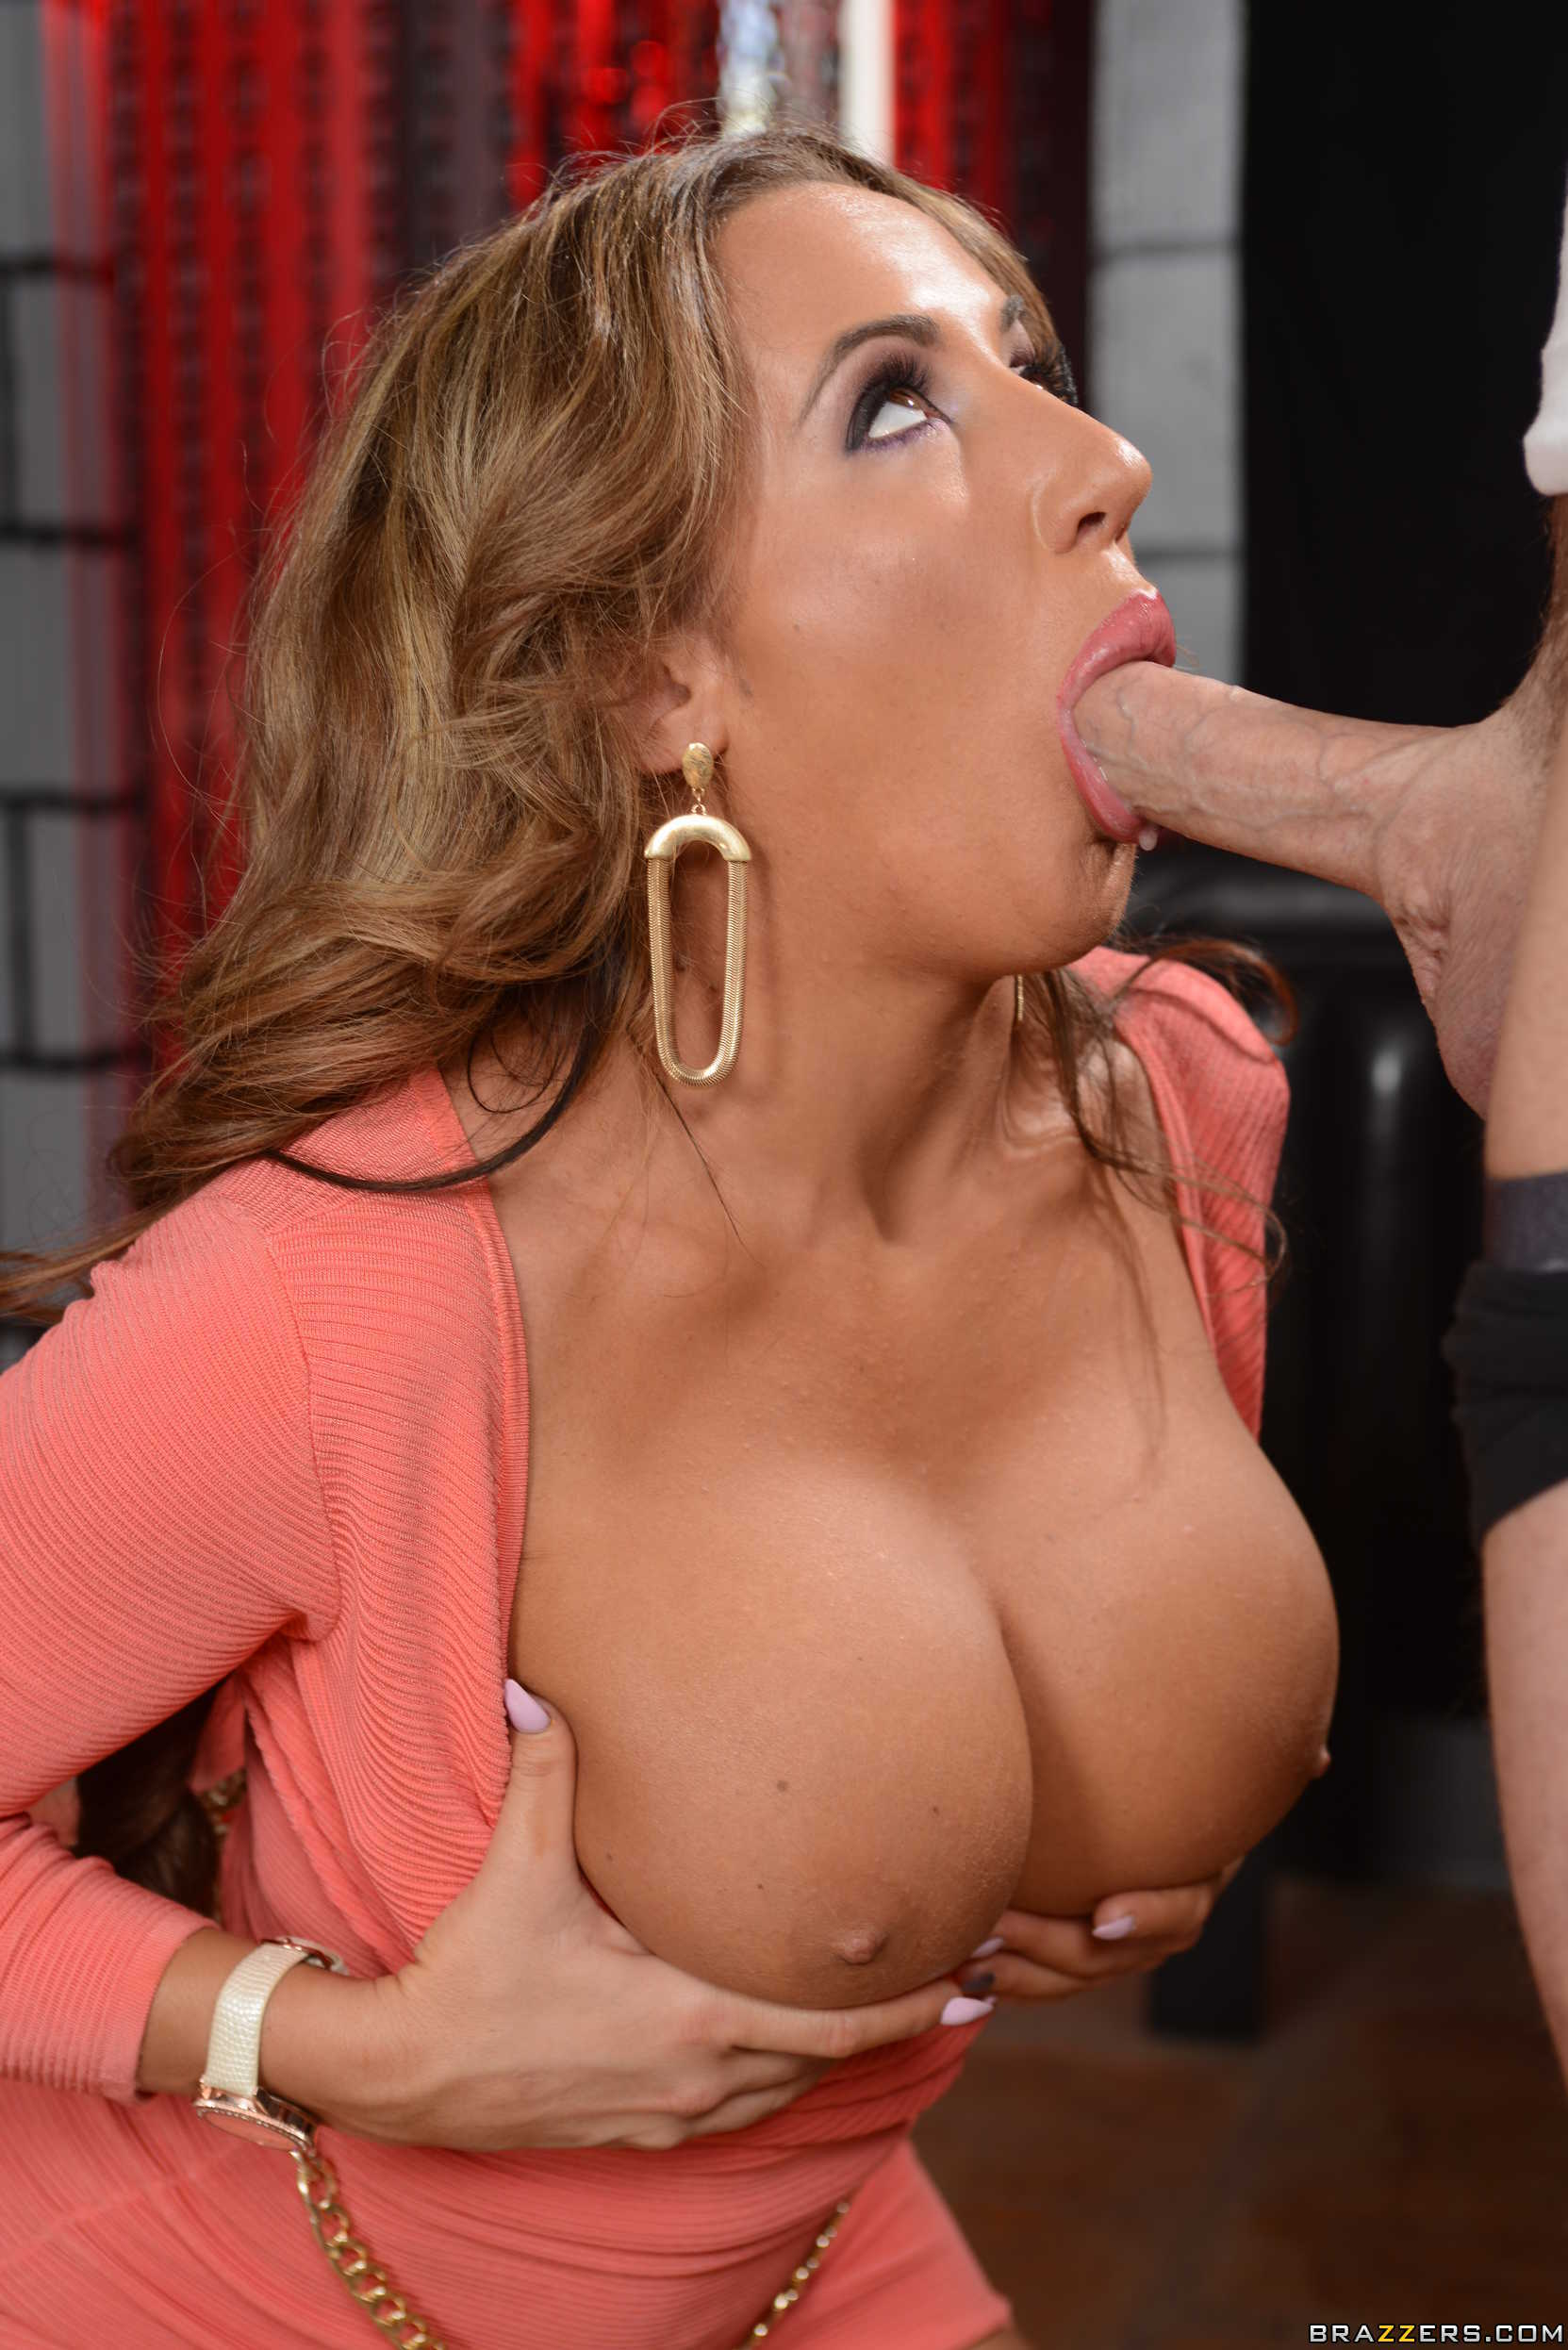 Richelle ryan big tits brazzers